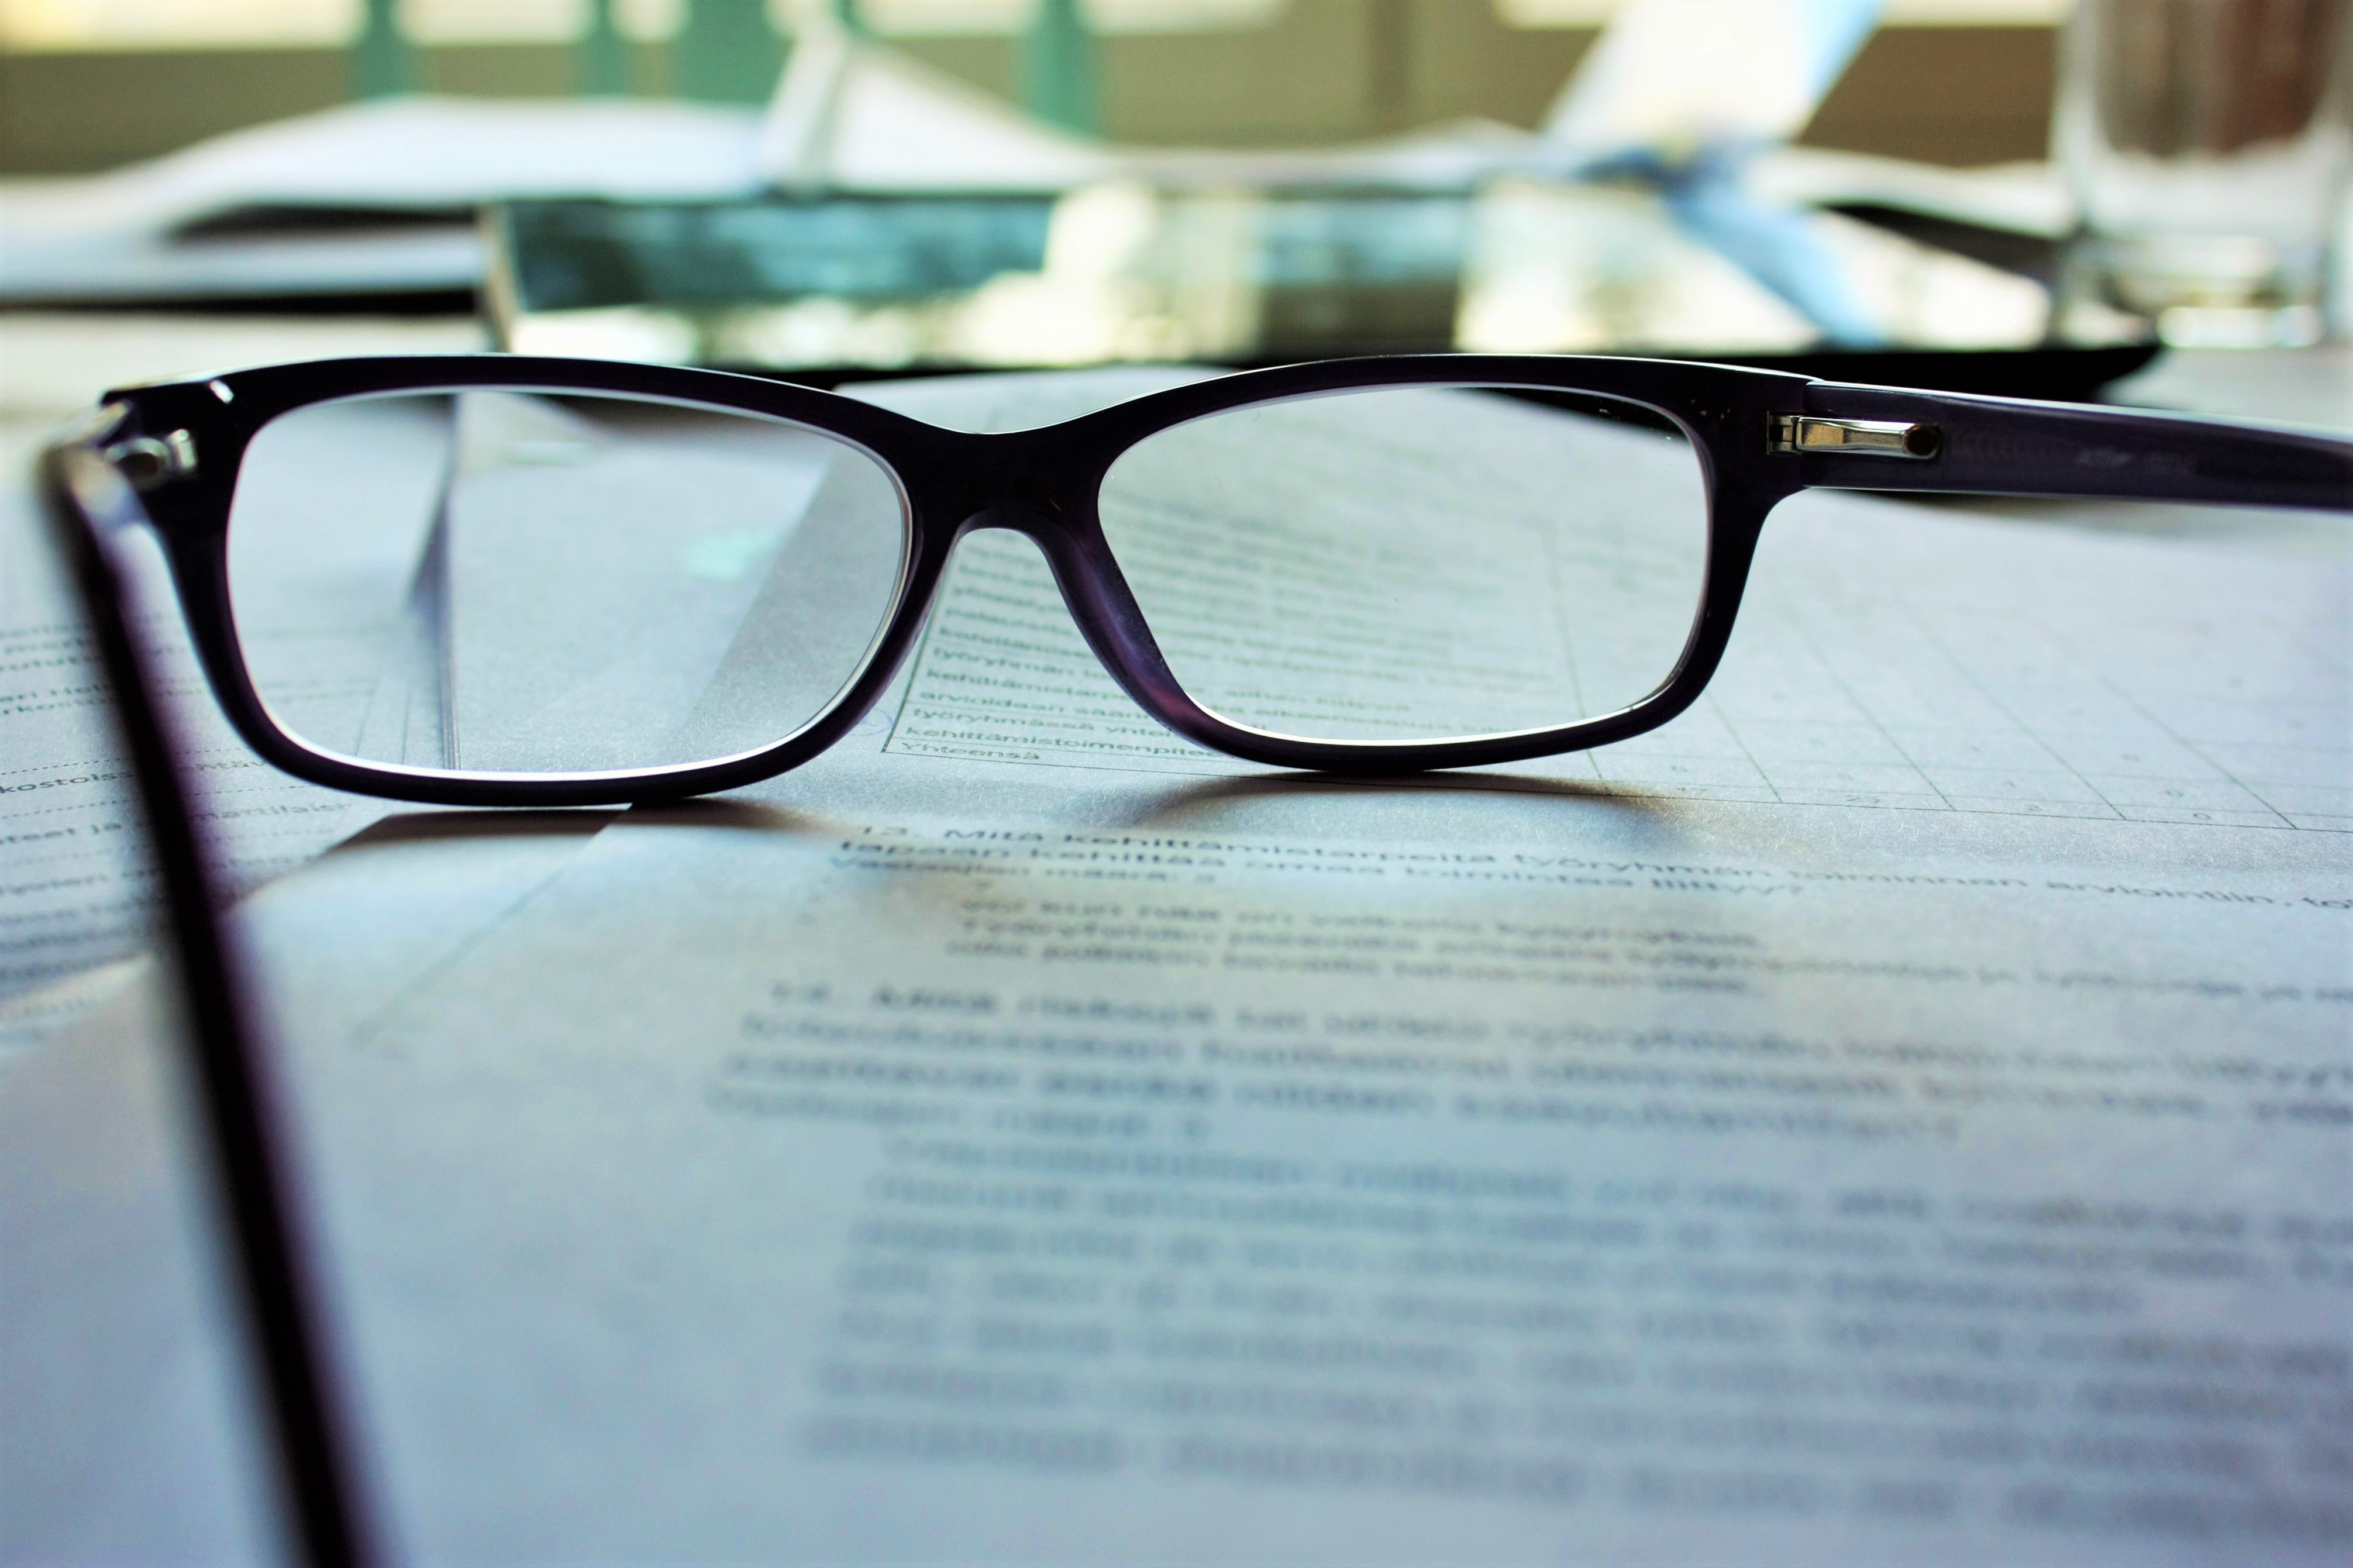 Close-up of a pair of glasses on printouts